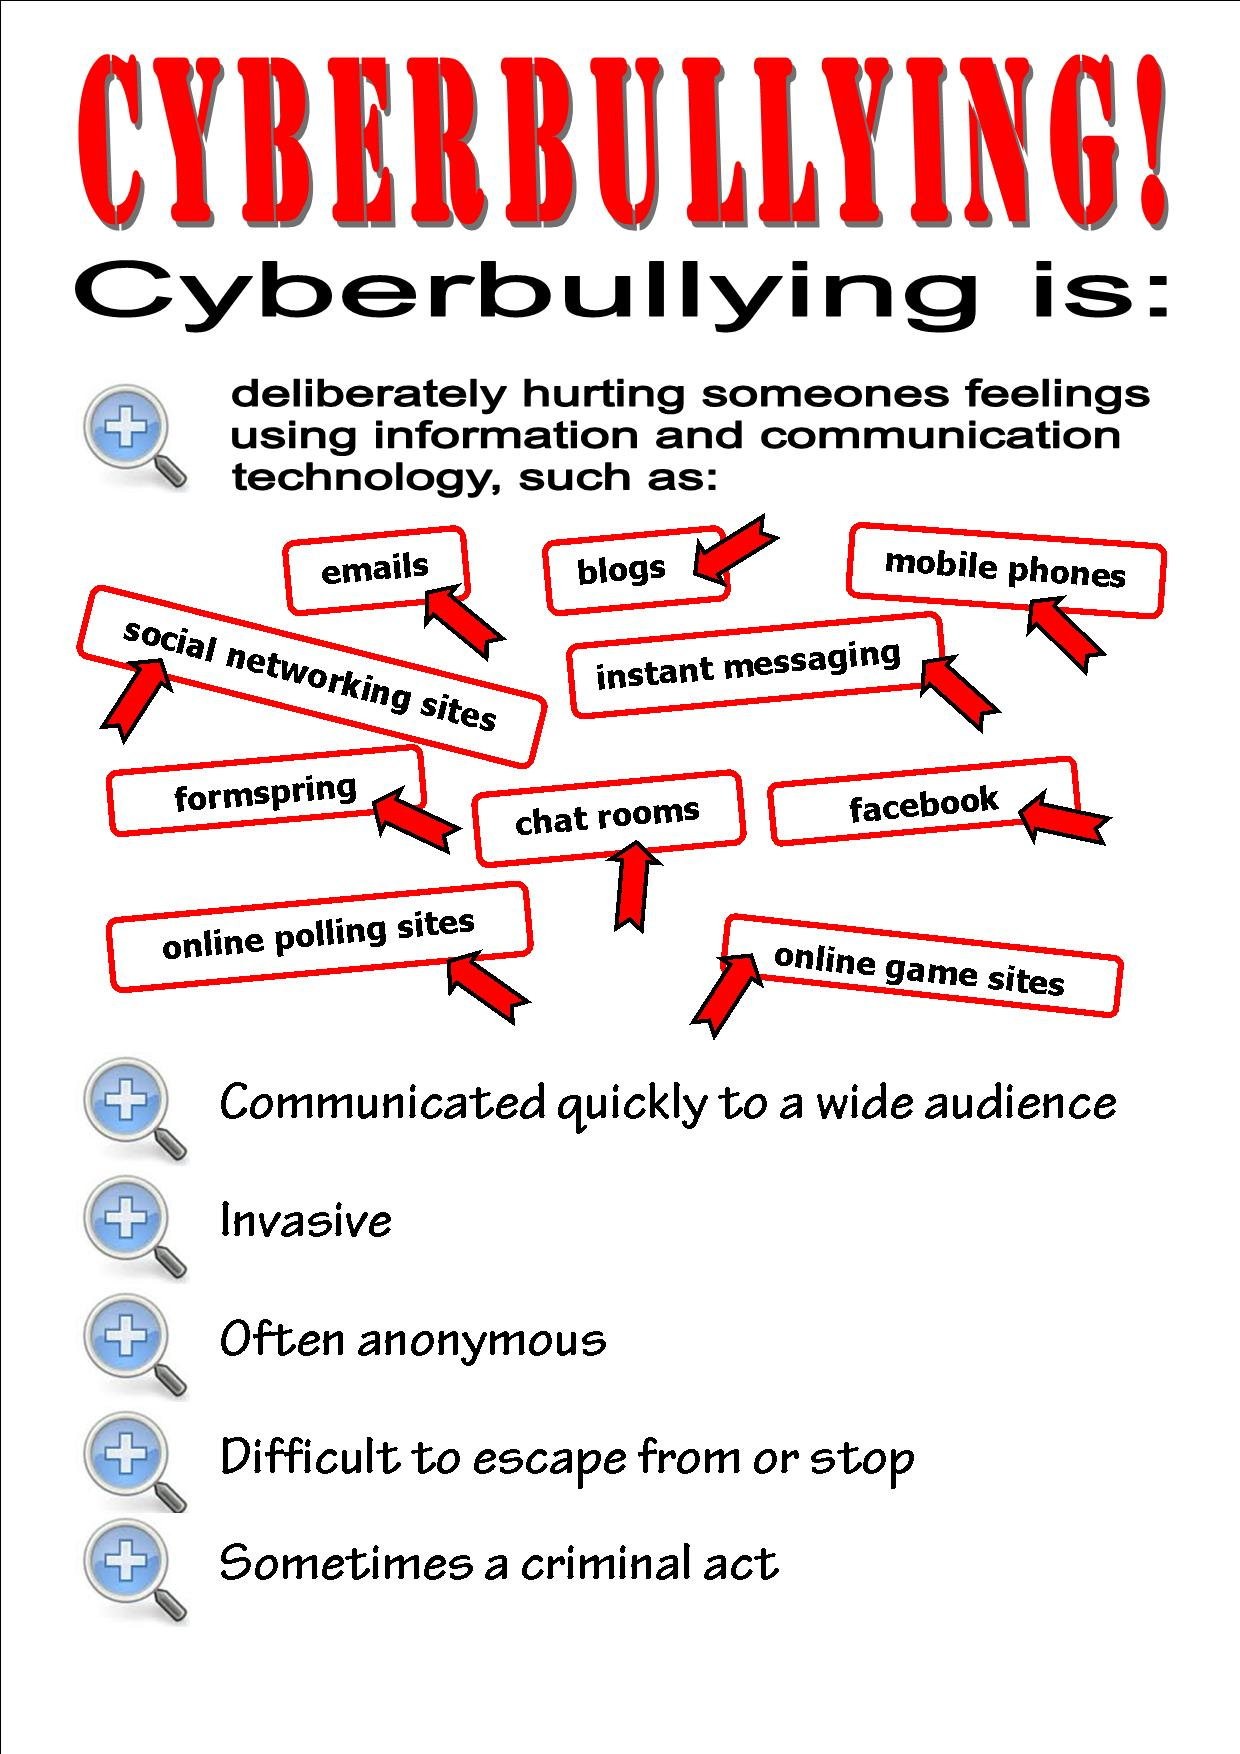 Worksheets Cyber Bullying Worksheets bullying can occur even before camp begins or after has ended for the day summer campers communicate by instant messaging e mail